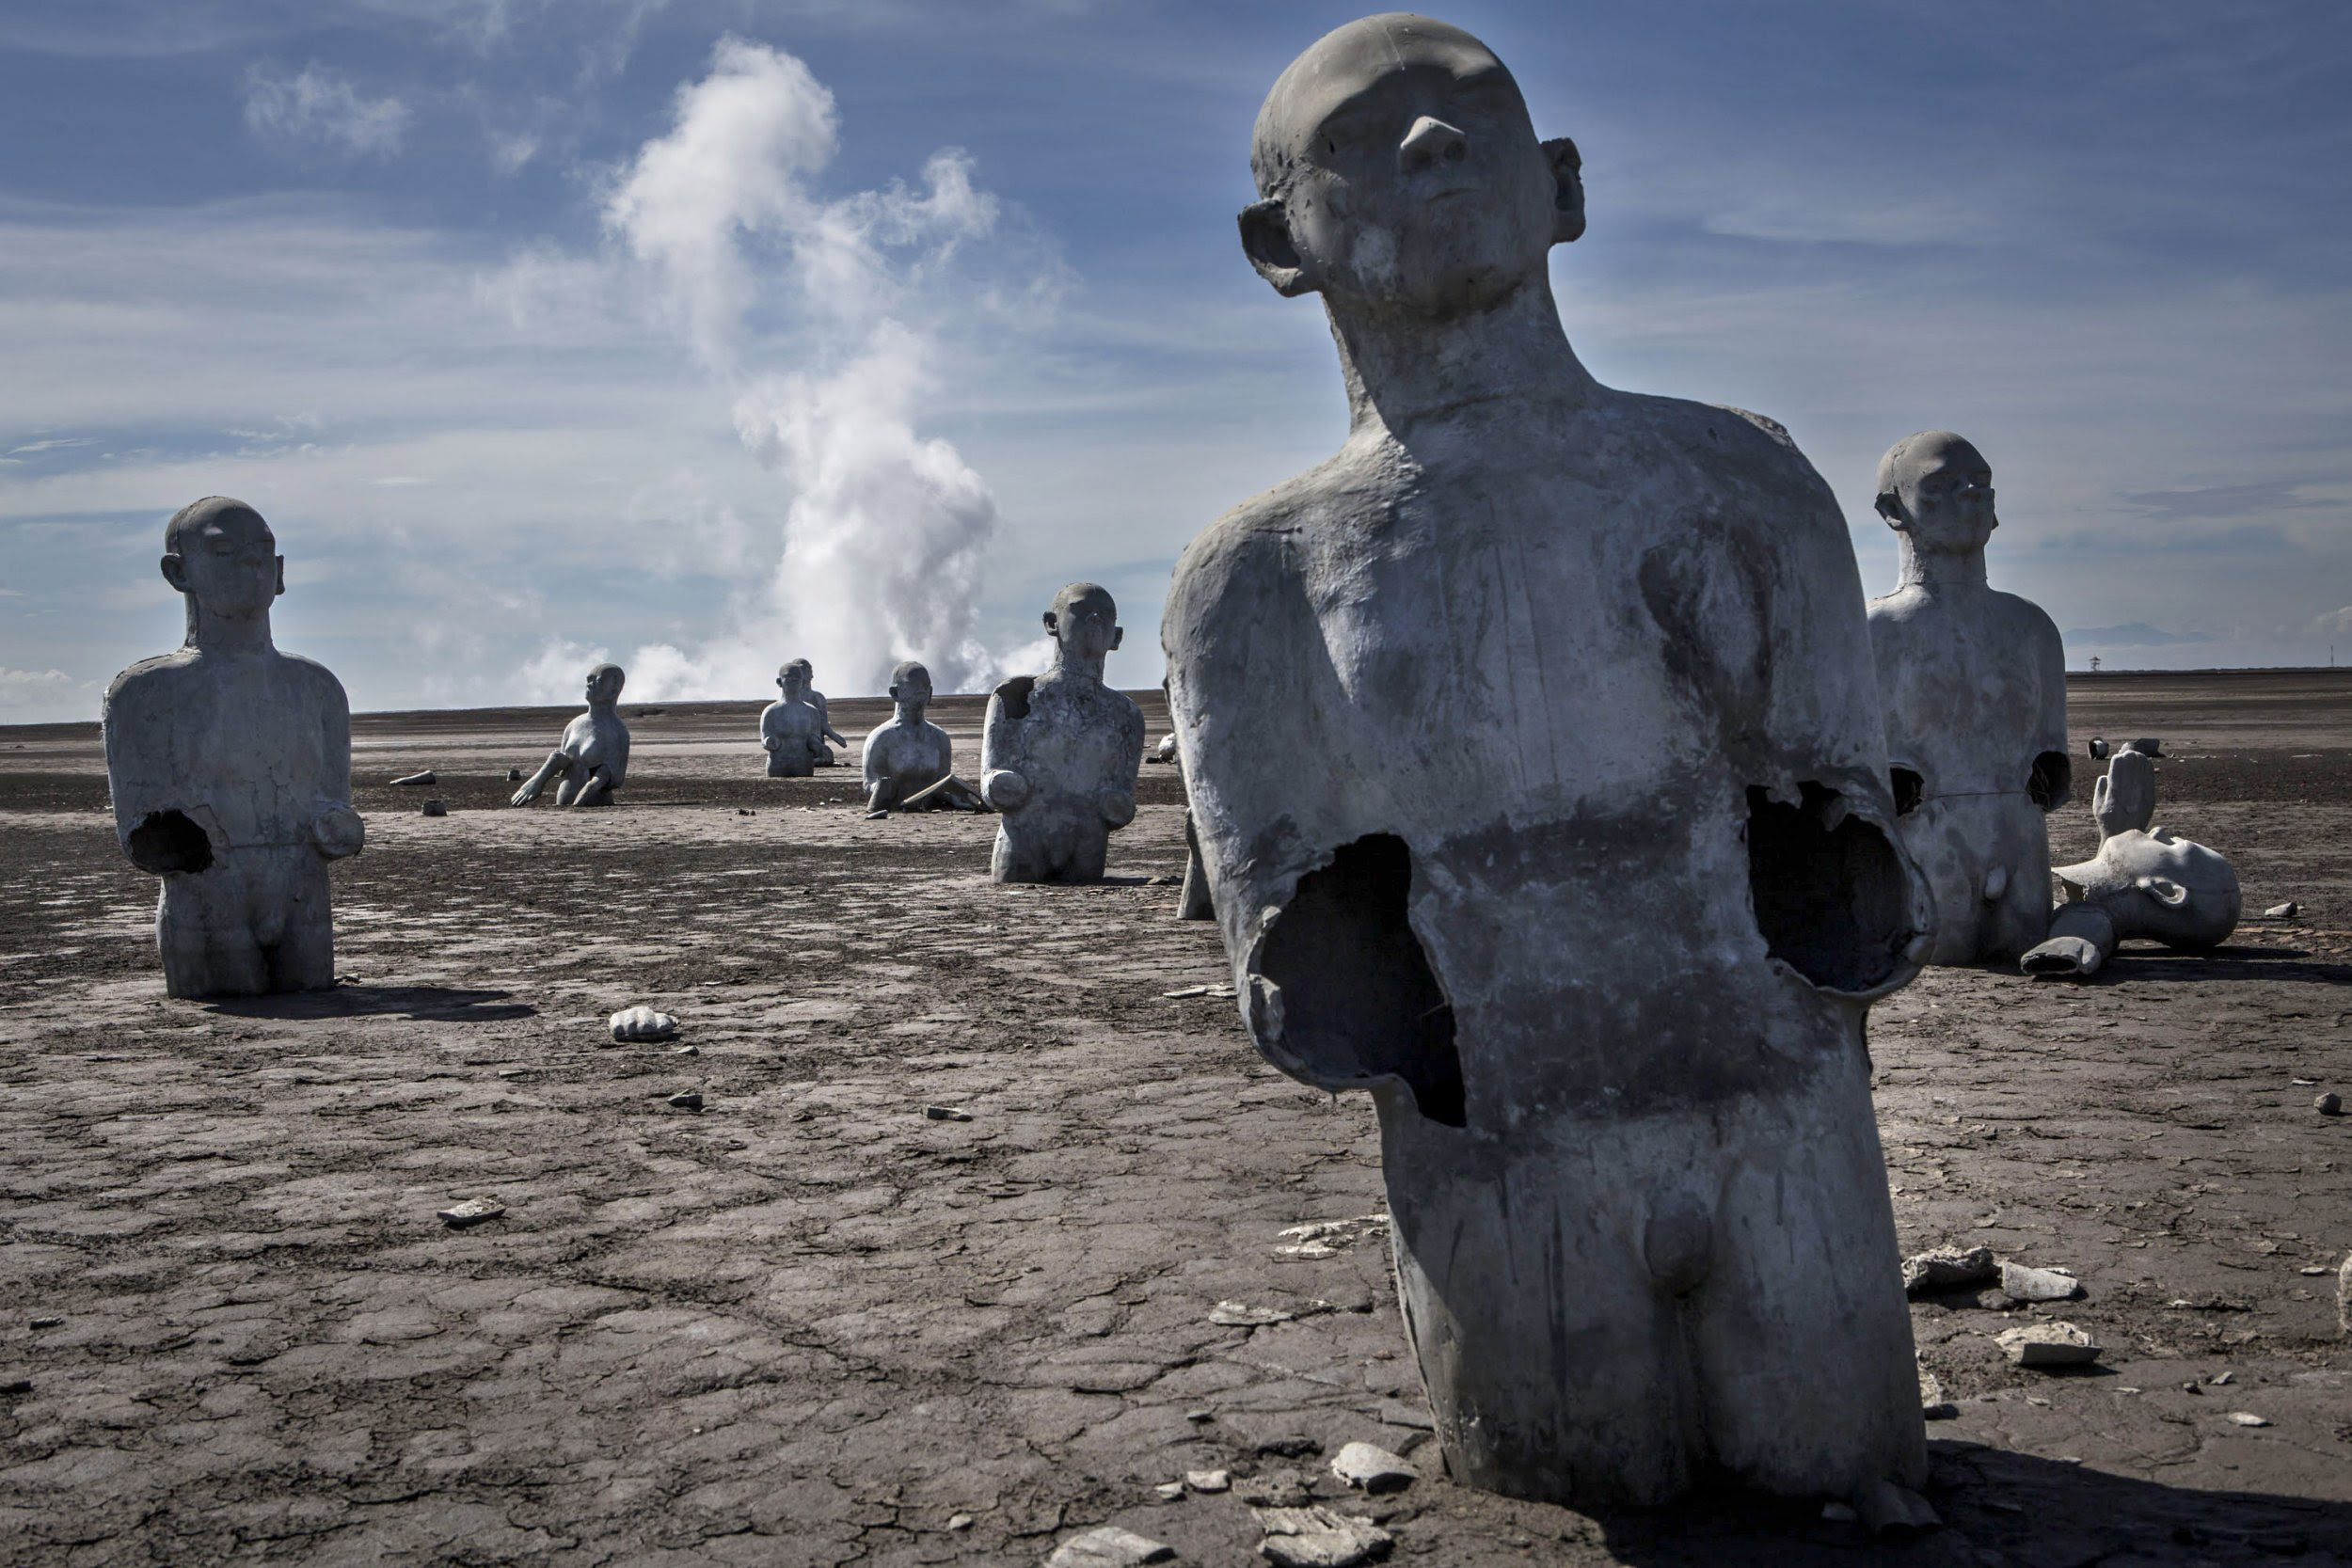 Indonesia: Mud Volcano That Swallowed a Town and Has Been Erupting for 11 Years Baffles Scientists